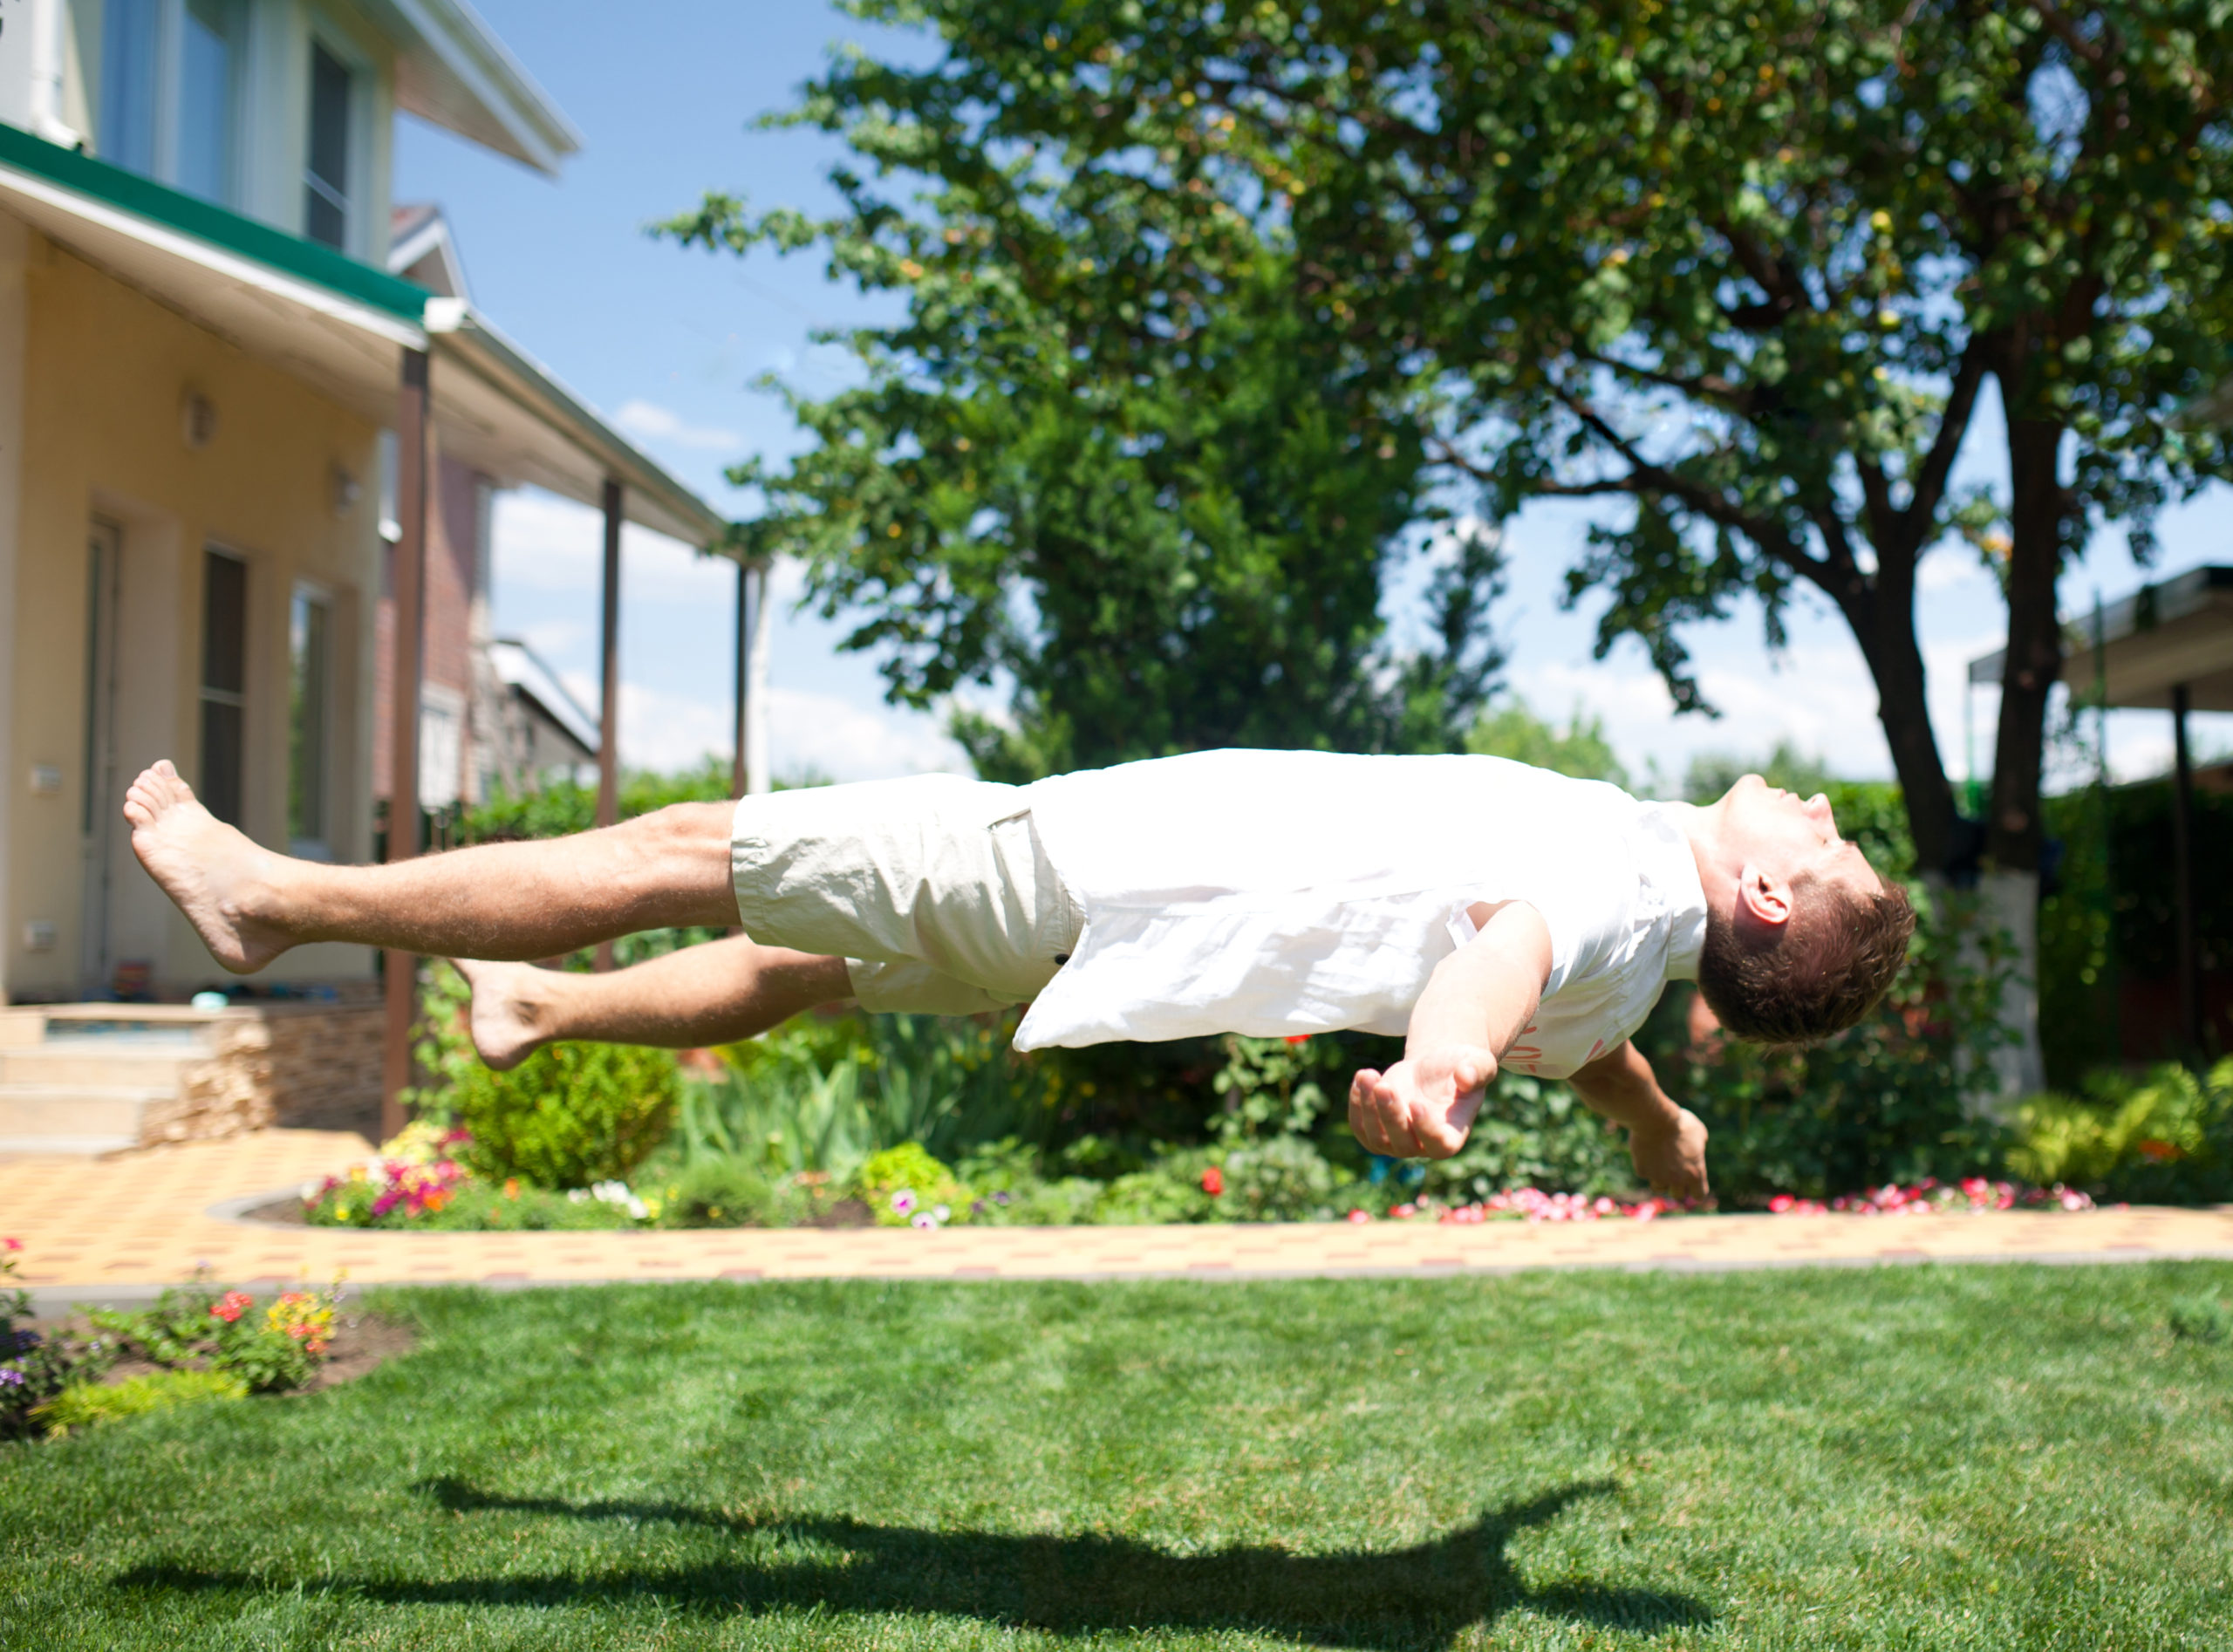 Young man flying or levitating over grass in the backyard, holiday concept